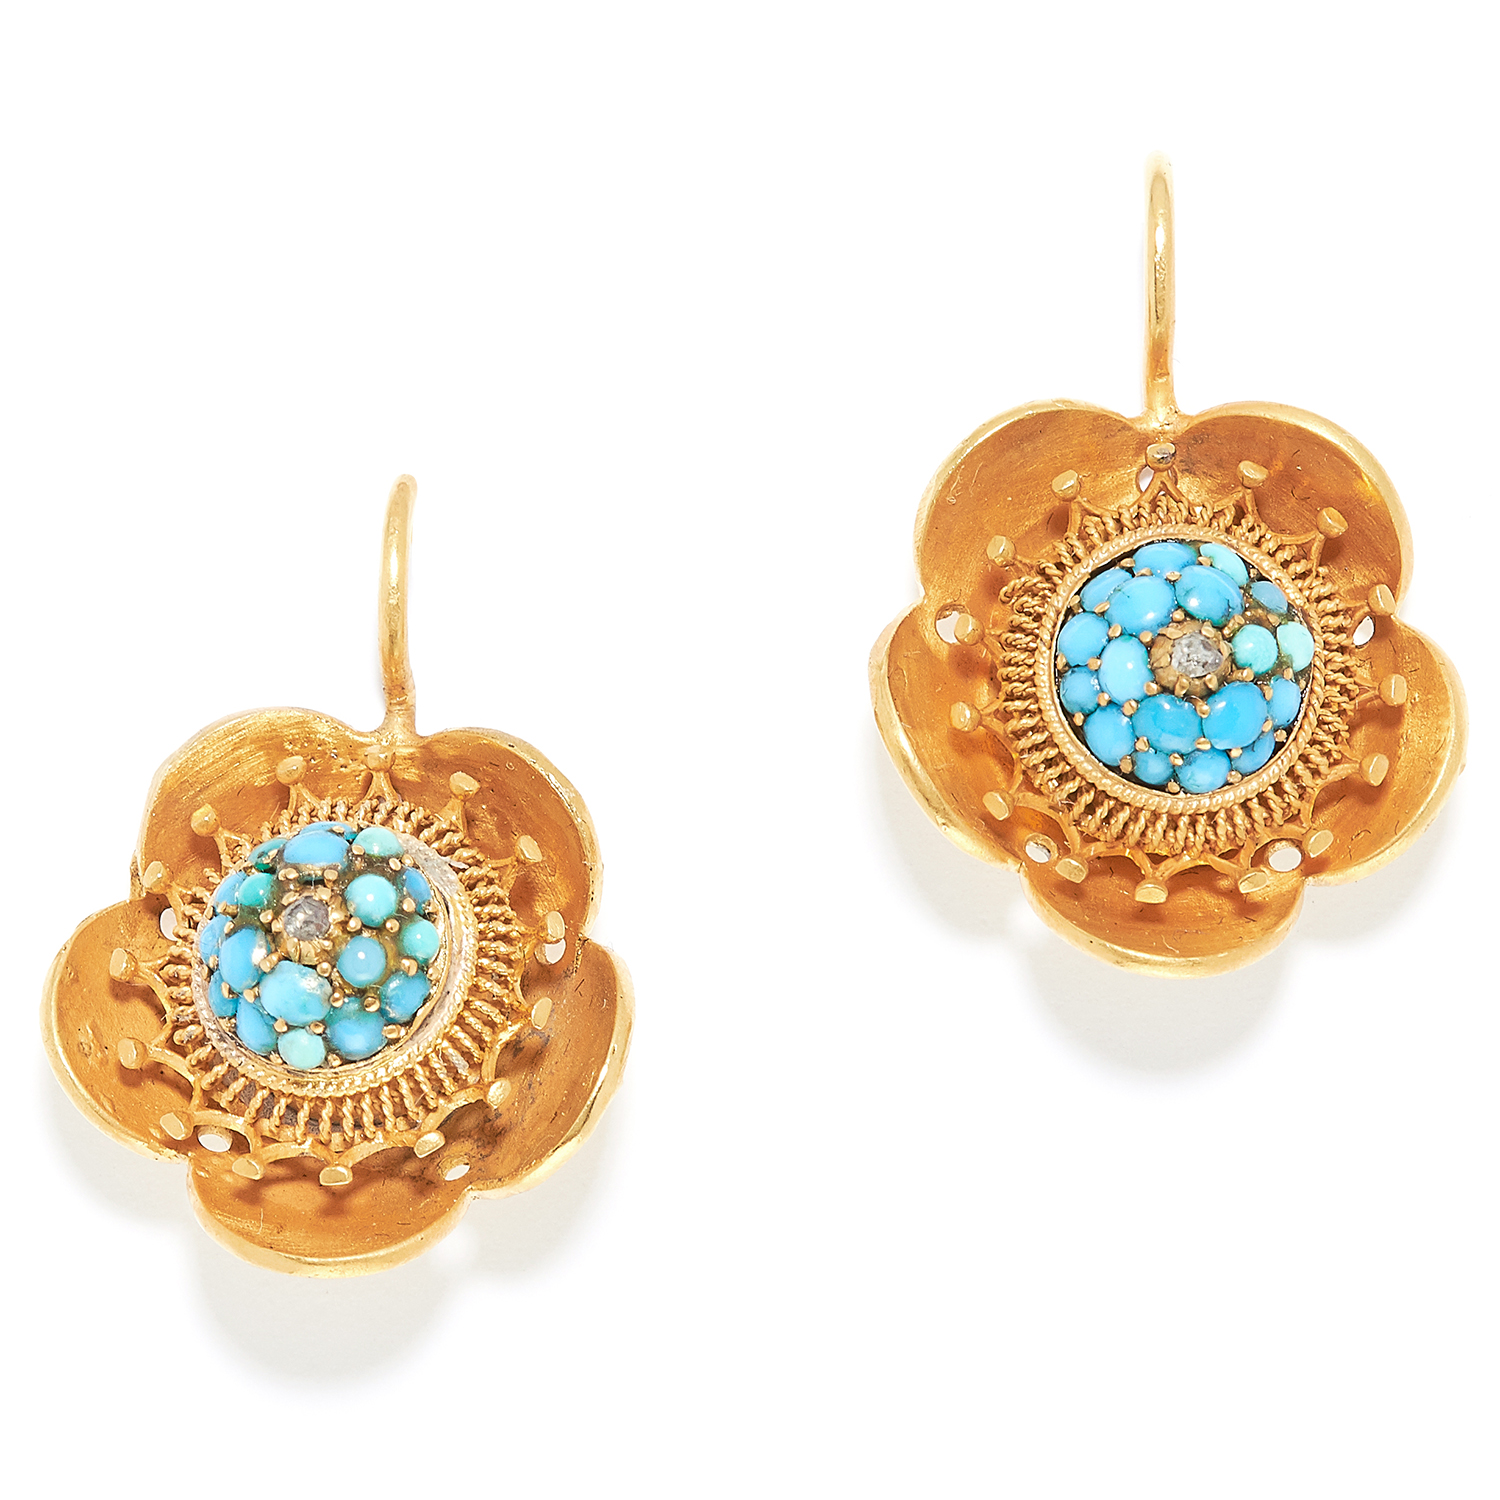 ANTIQUE TURQUOISE AND DIAMOND EARRINGS, 19TH CENTURY in high carat yellow gold, the floral designs